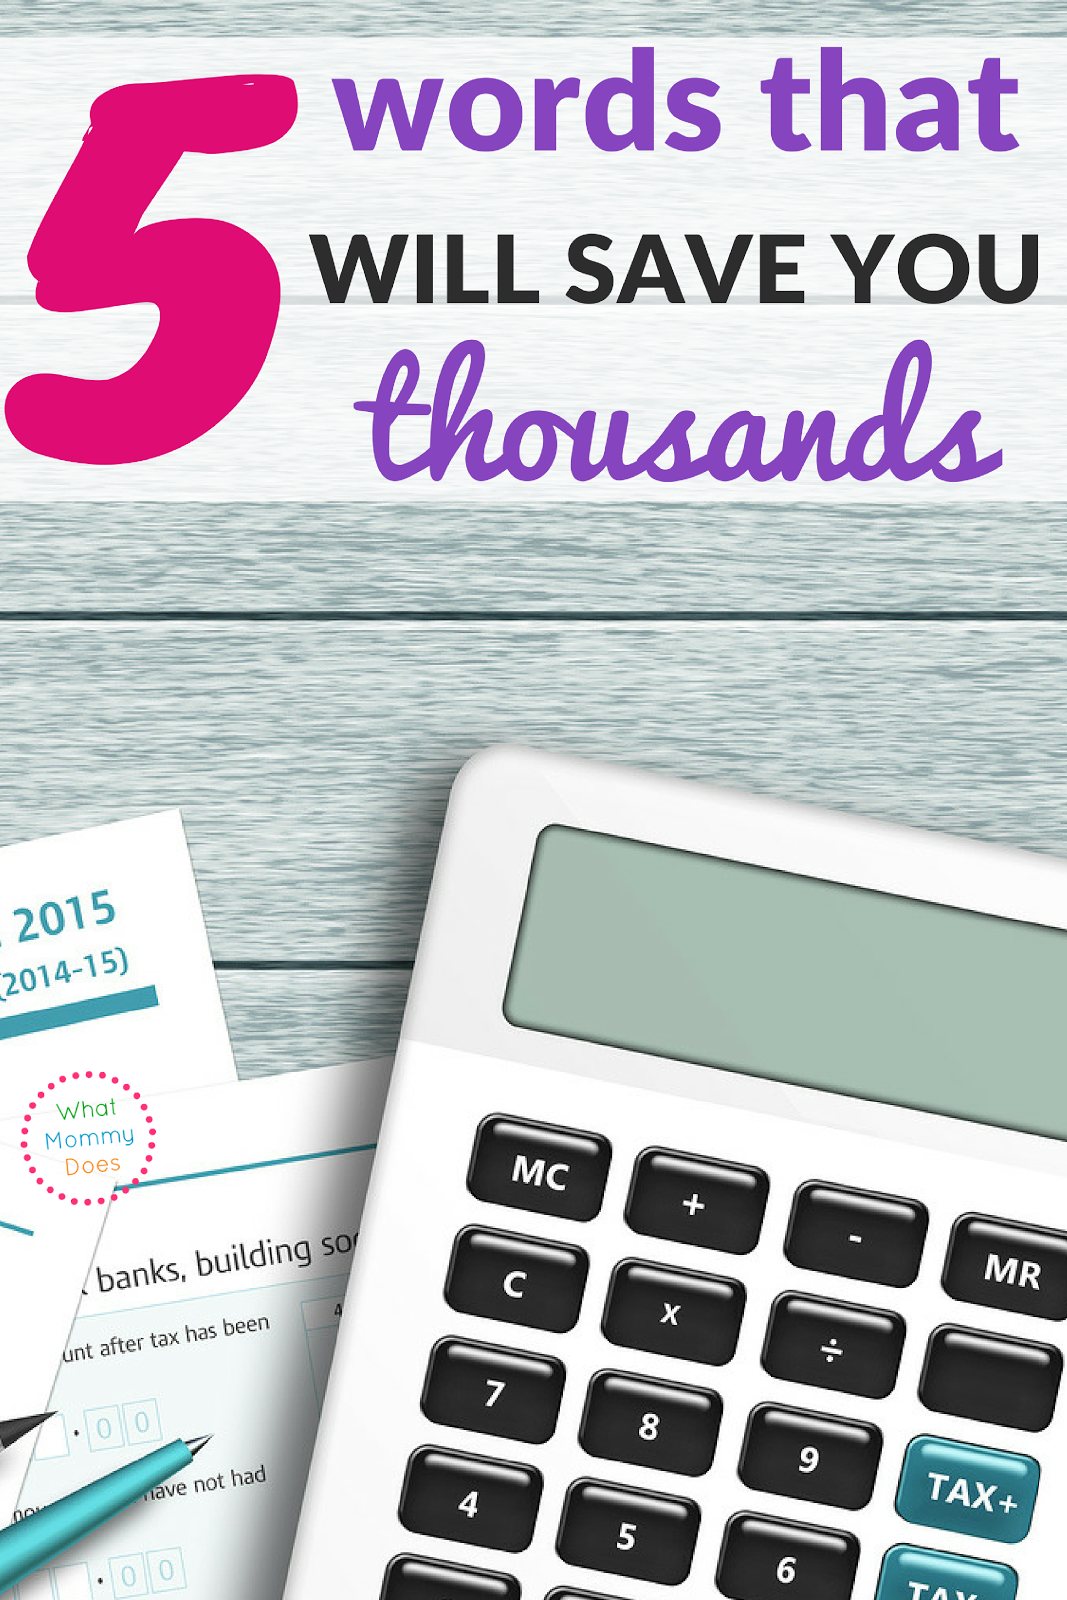 Learn how to save money each week by uttering 5 simple words! This is really powerful for budgeting.